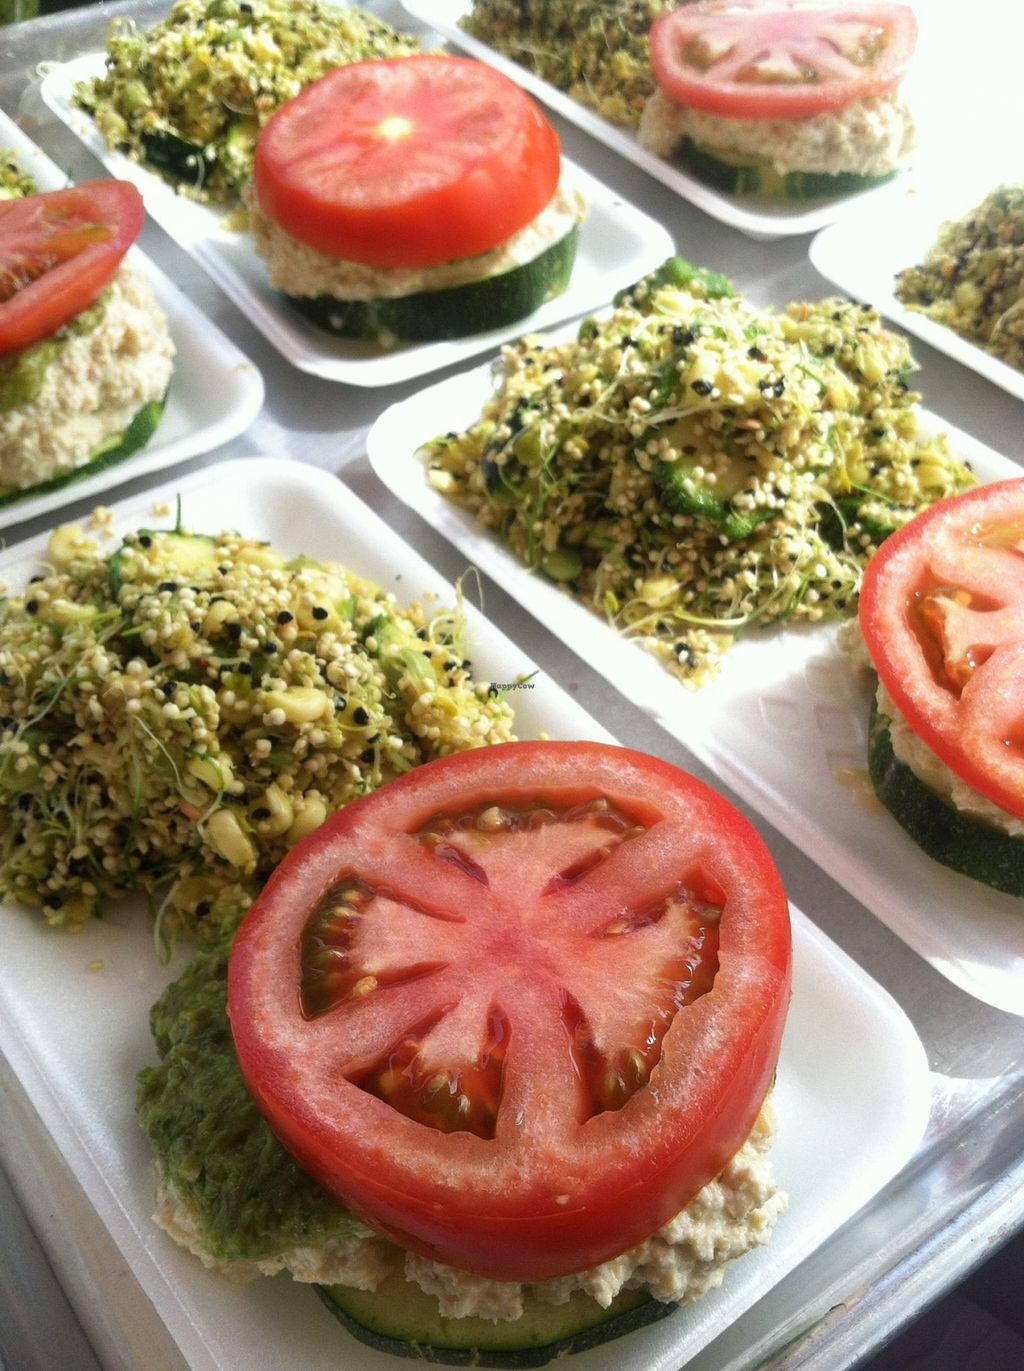 """Photo of Lotus World Foods  by <a href=""""/members/profile/community"""">community</a> <br/>Organic Raw Vegan Sliders & Organic Raw Vegan Quinoa Curry <br/> April 24, 2016  - <a href='/contact/abuse/image/71912/146052'>Report</a>"""